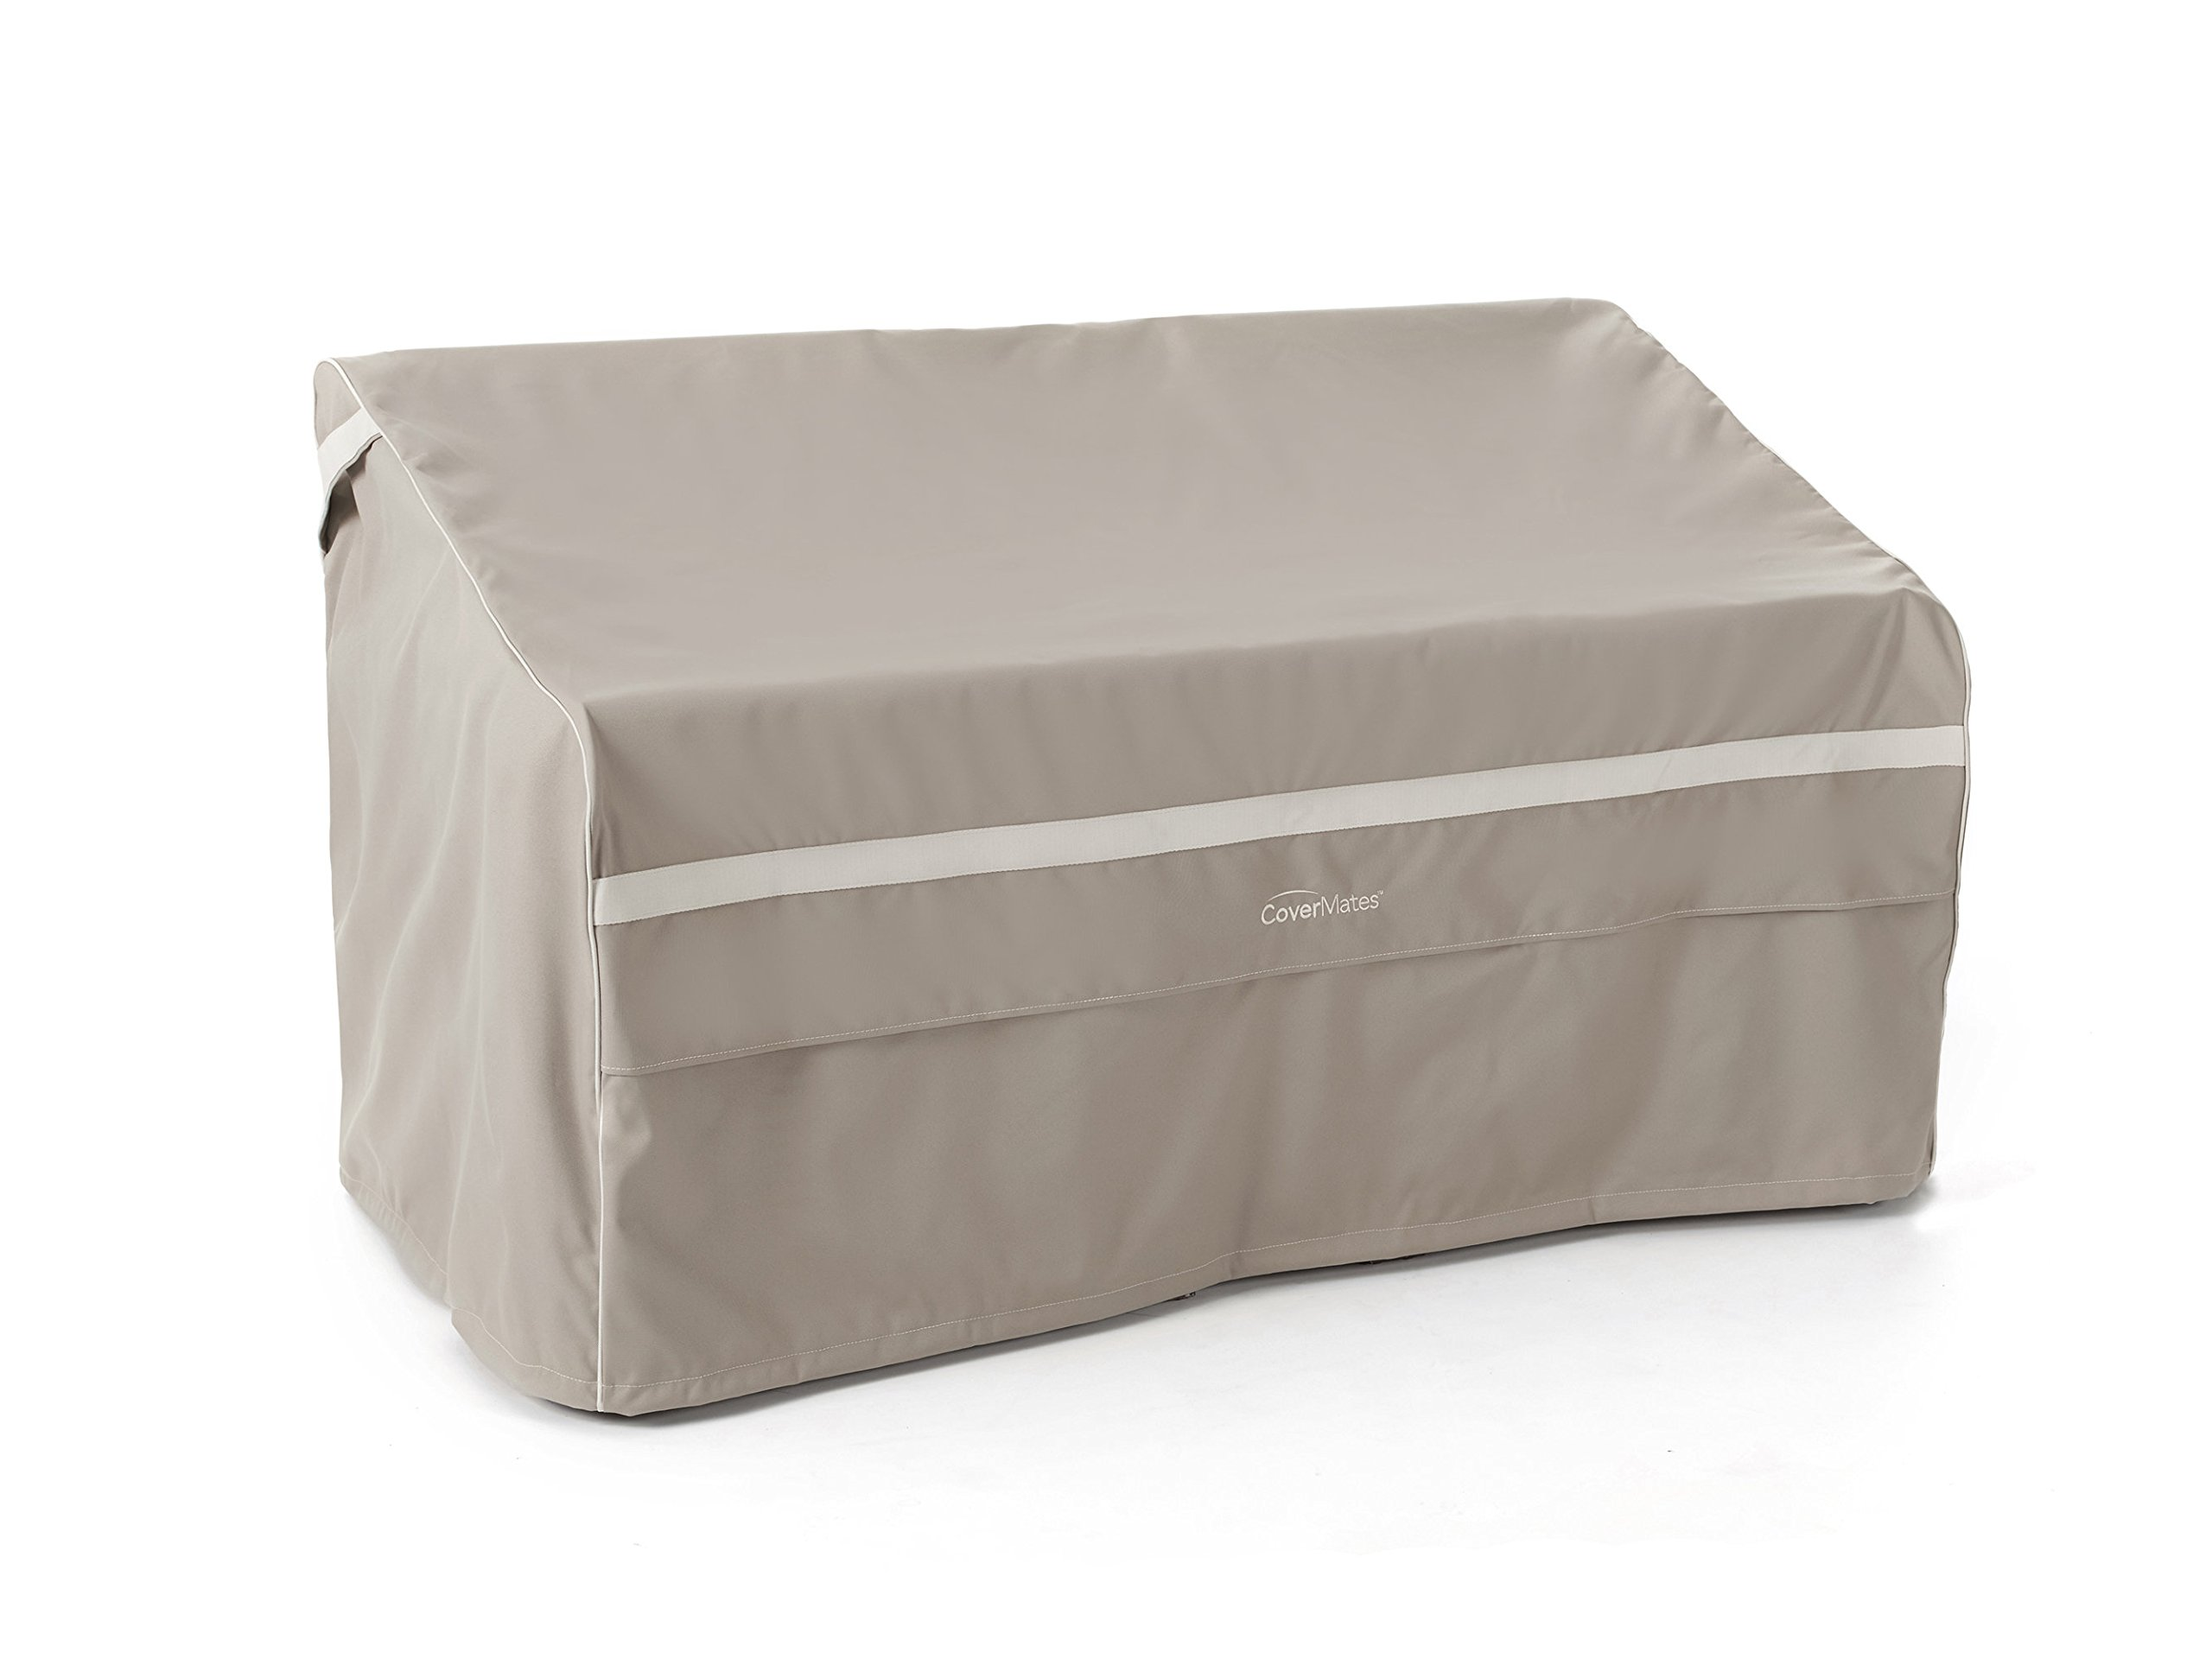 CoverMates – Outdoor Patio Bench Cover – 62W x 32D x 34H – Prestige Collection – 7 YR Warranty – Year Around Protection - Clay